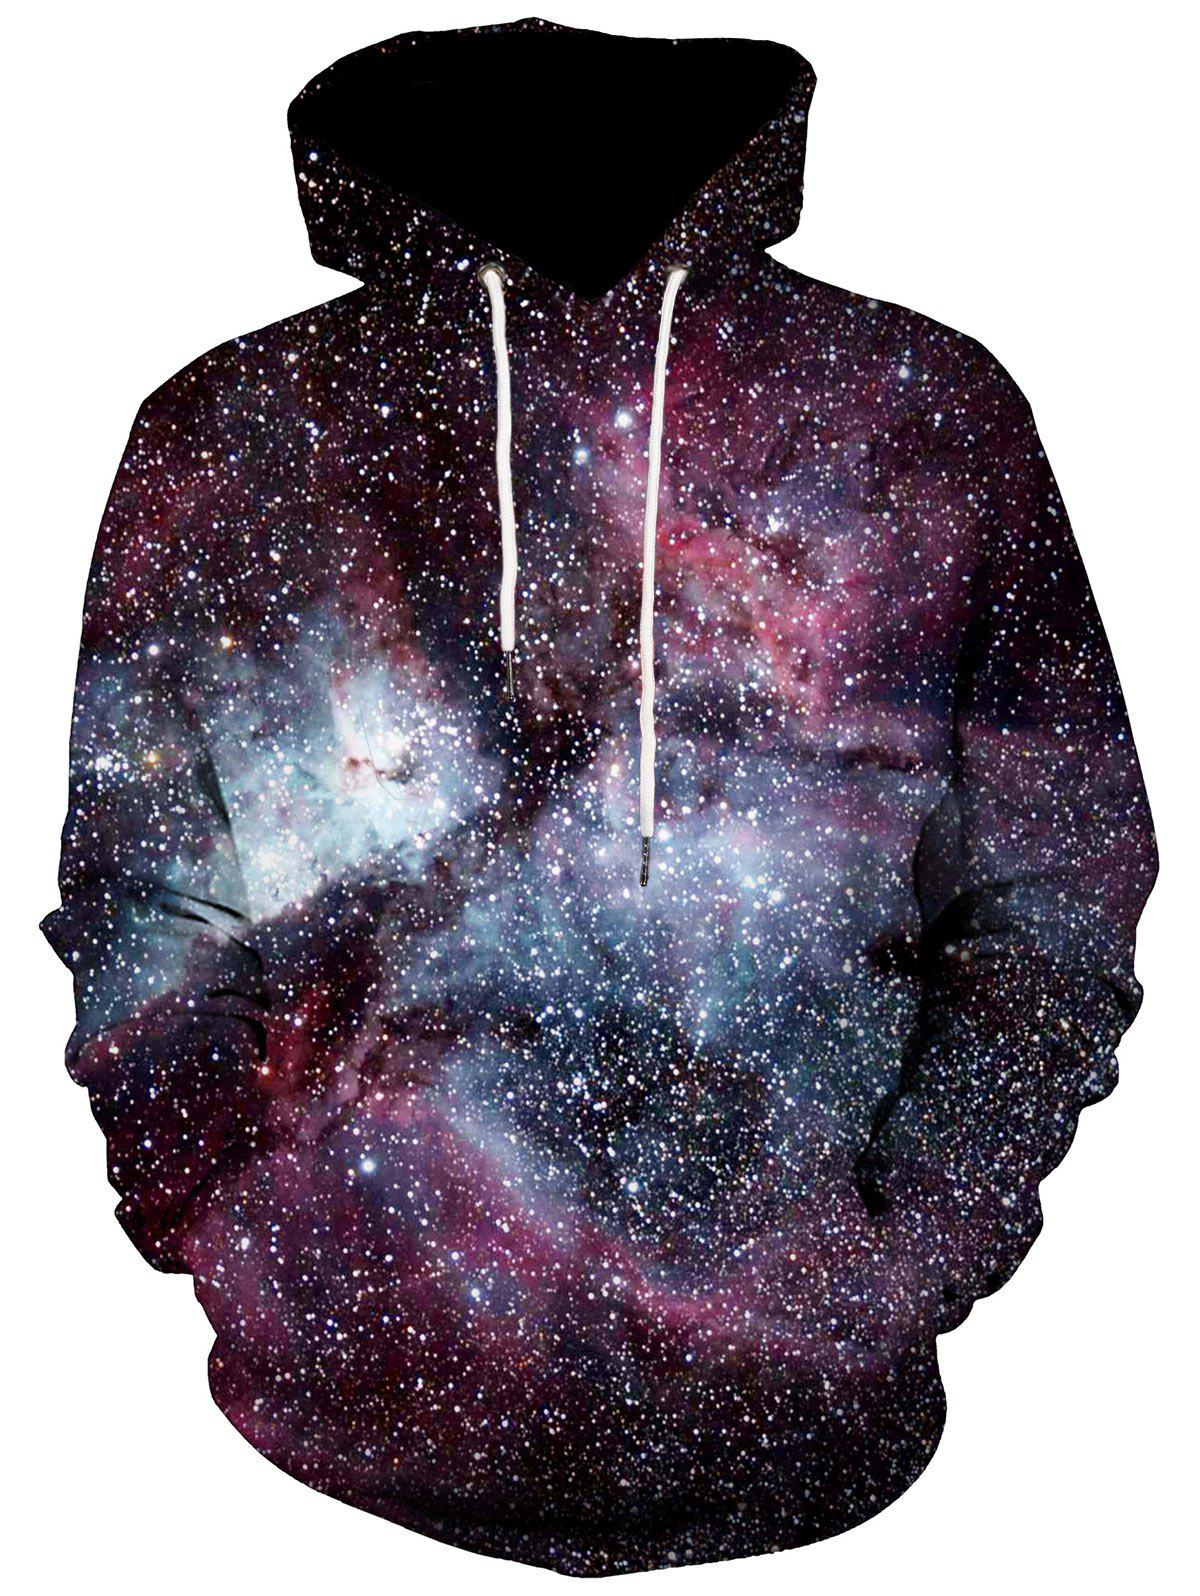 Kangaroo Pocket Pullover 3D Galaxy HoodieMEN<br><br>Size: L; Color: COLORMIX; Material: Polyester; Clothes Type: Hoodie; Shirt Length: Regular; Sleeve Length: Full; Style: Casual; Patterns: 3D; Thickness: Regular; Occasion: Casual; Weight: 0.5200kg; Package Contents: 1 x Hoodie;